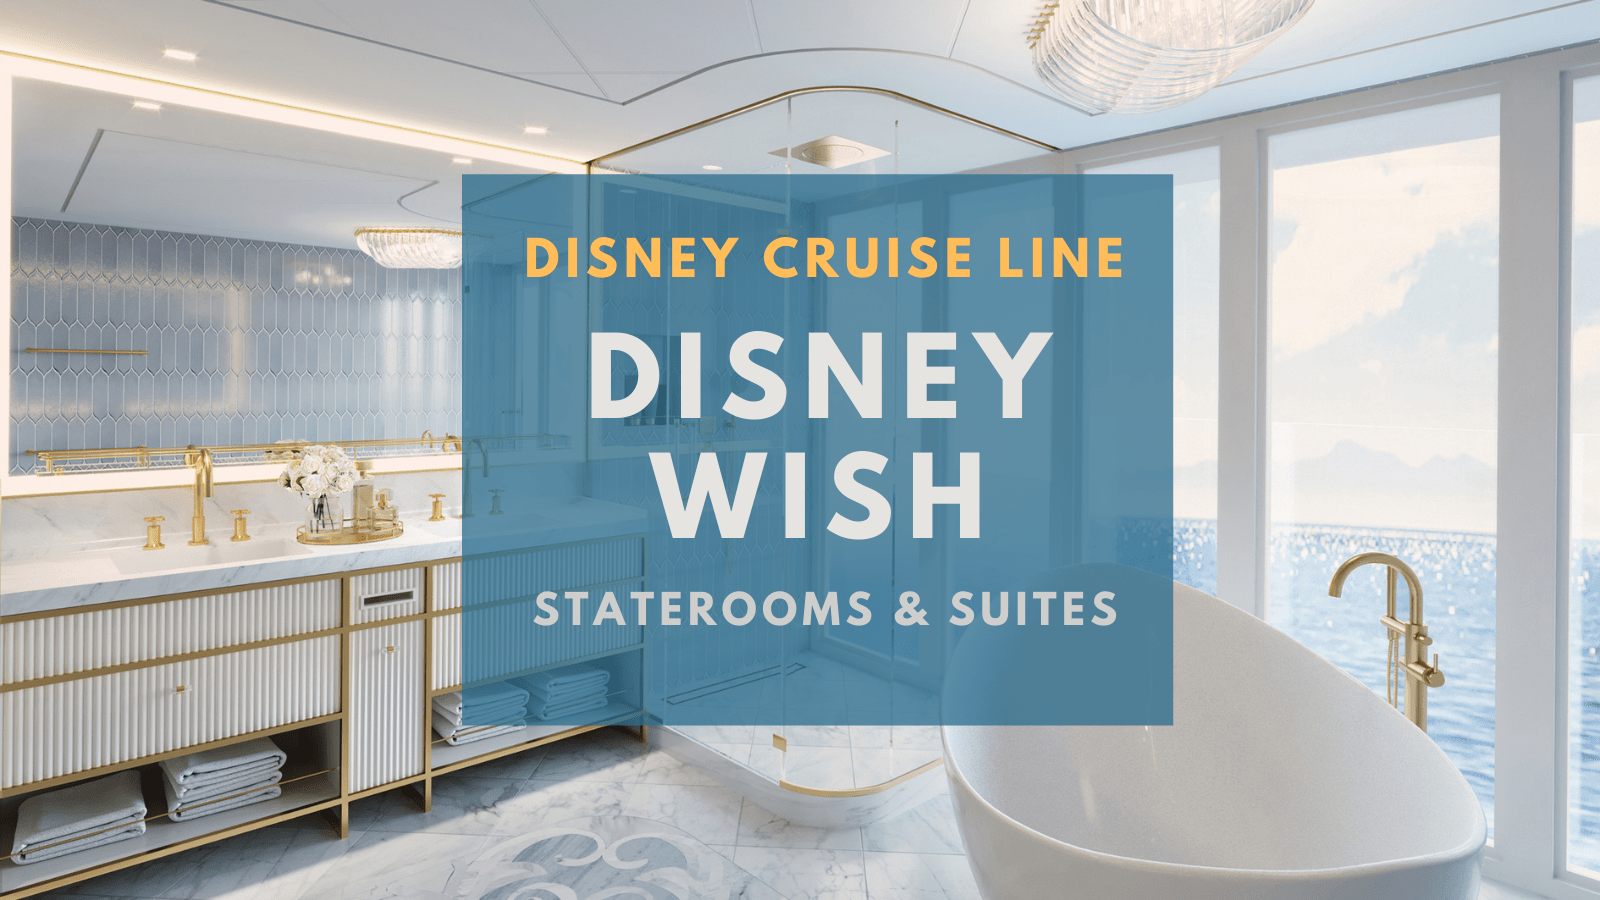 Dieney Wish Staterooms and Suites